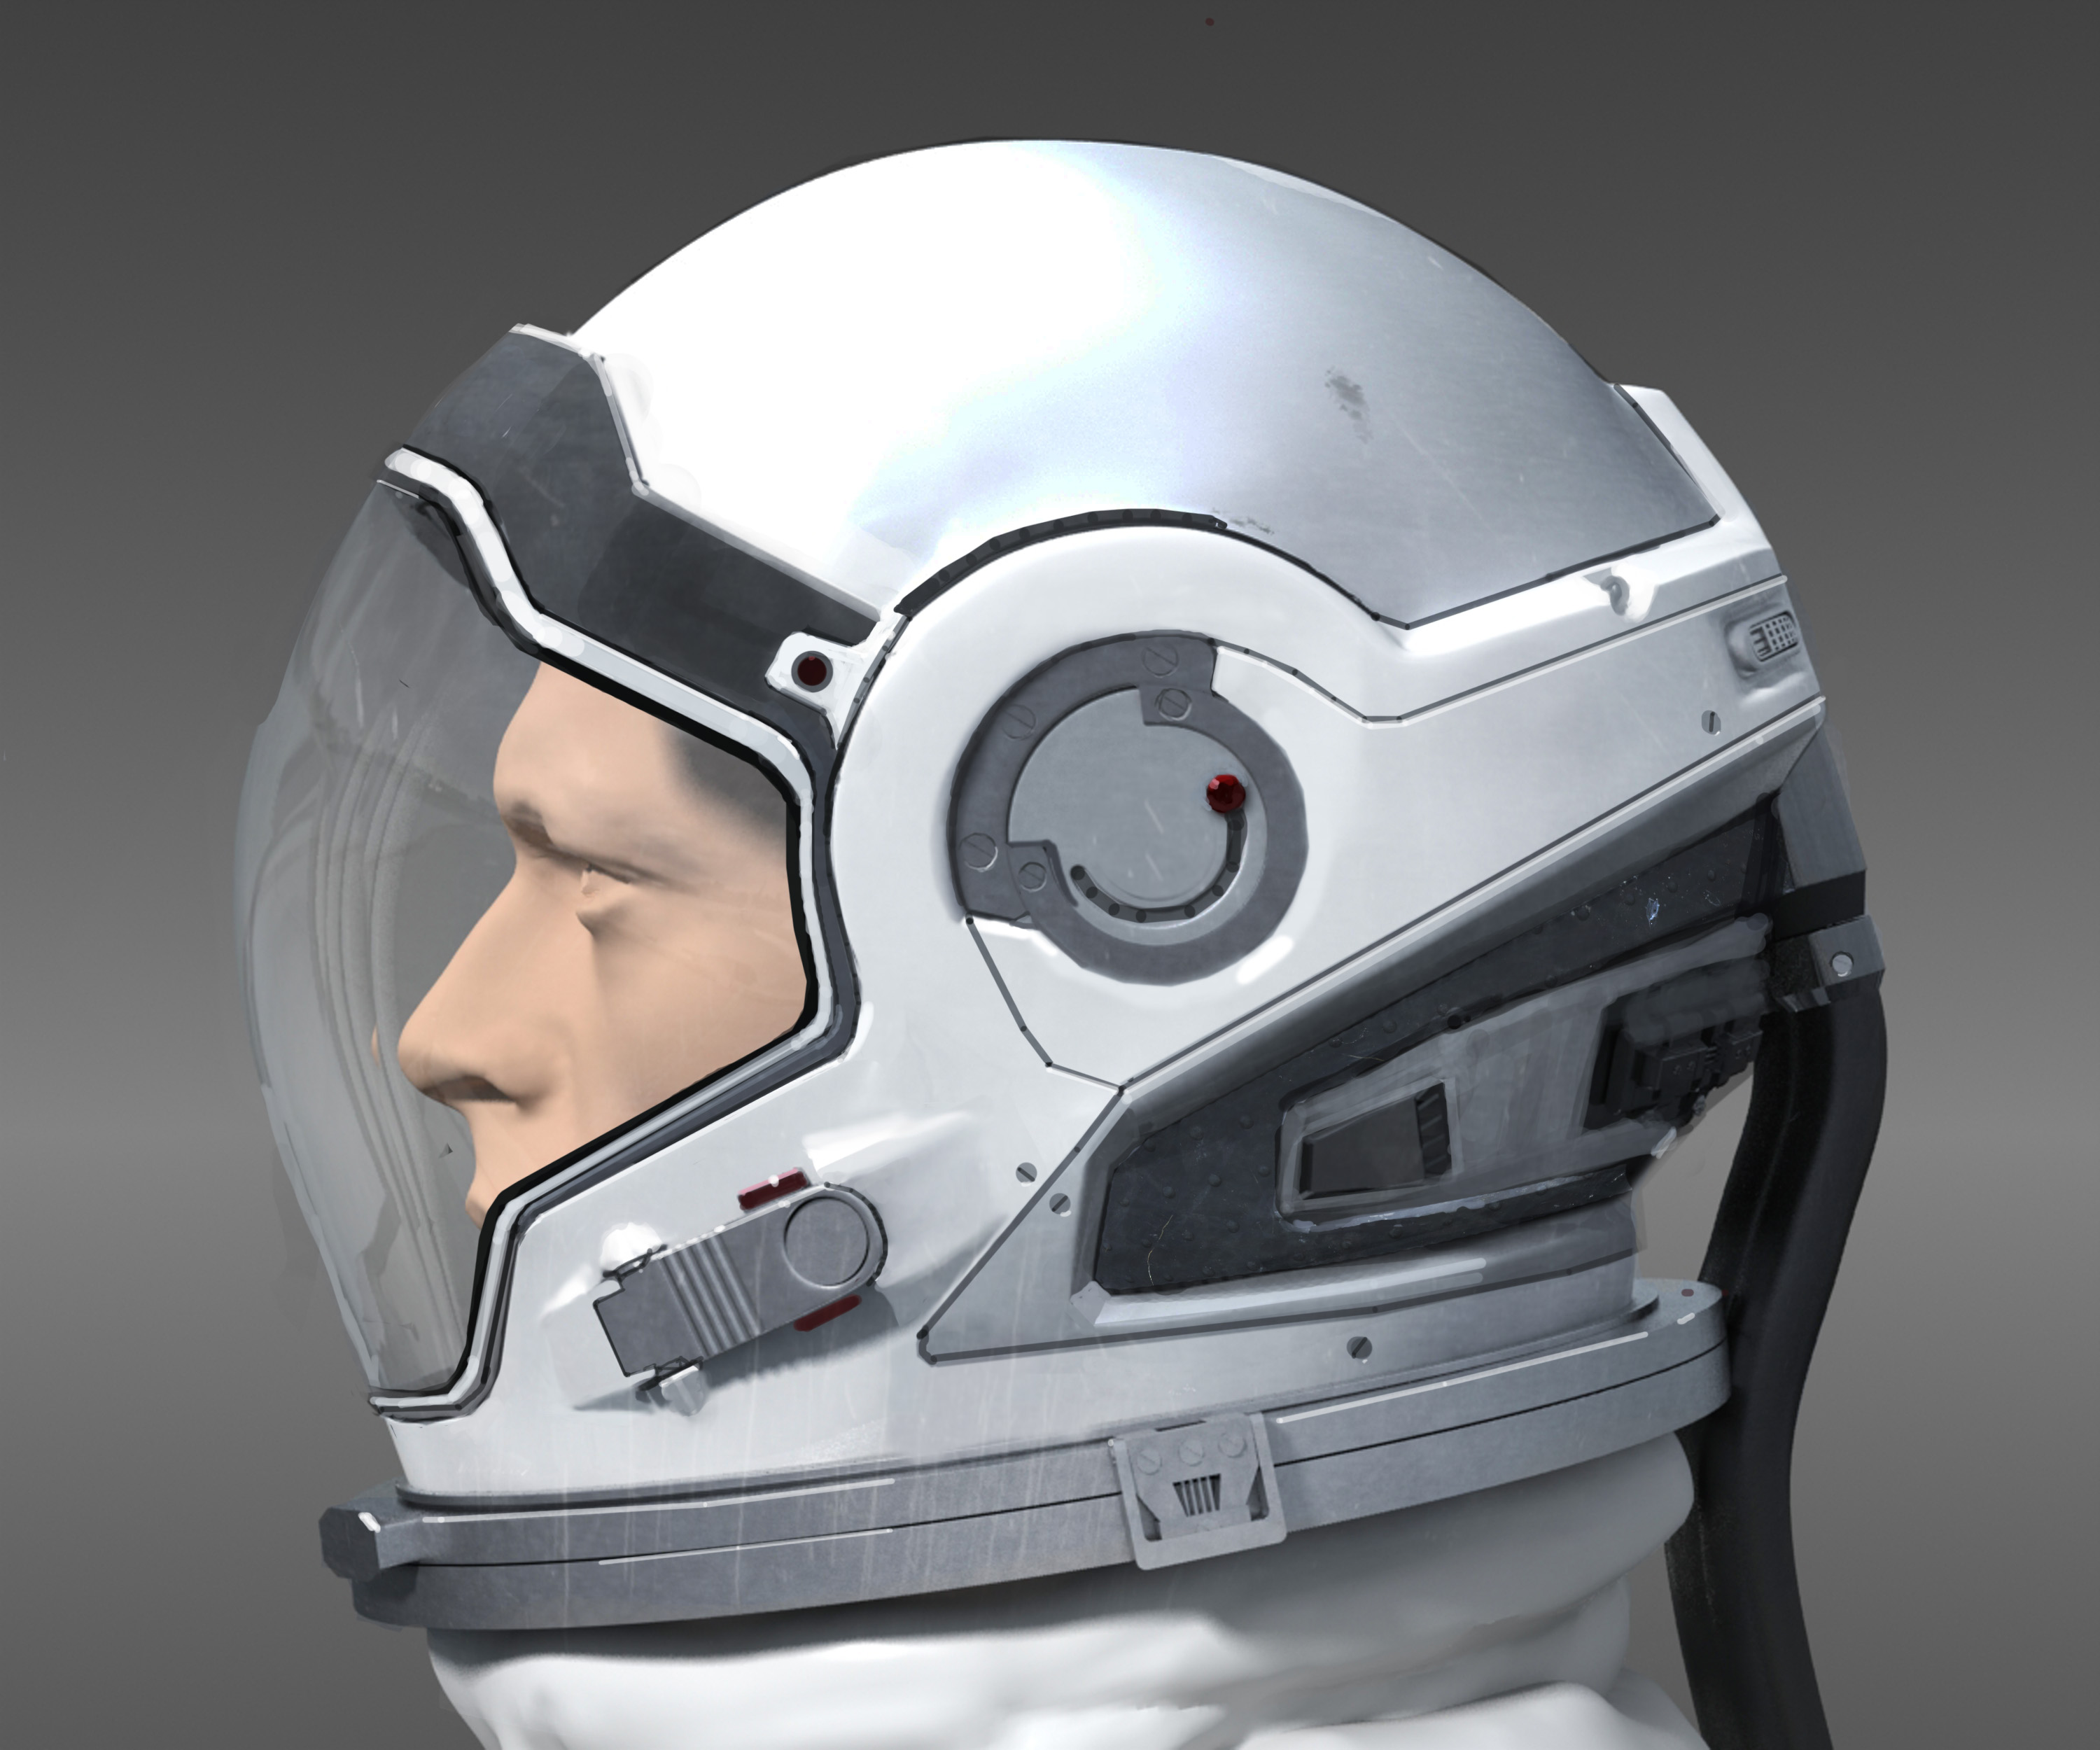 interstellar_space_suit_helmet_side